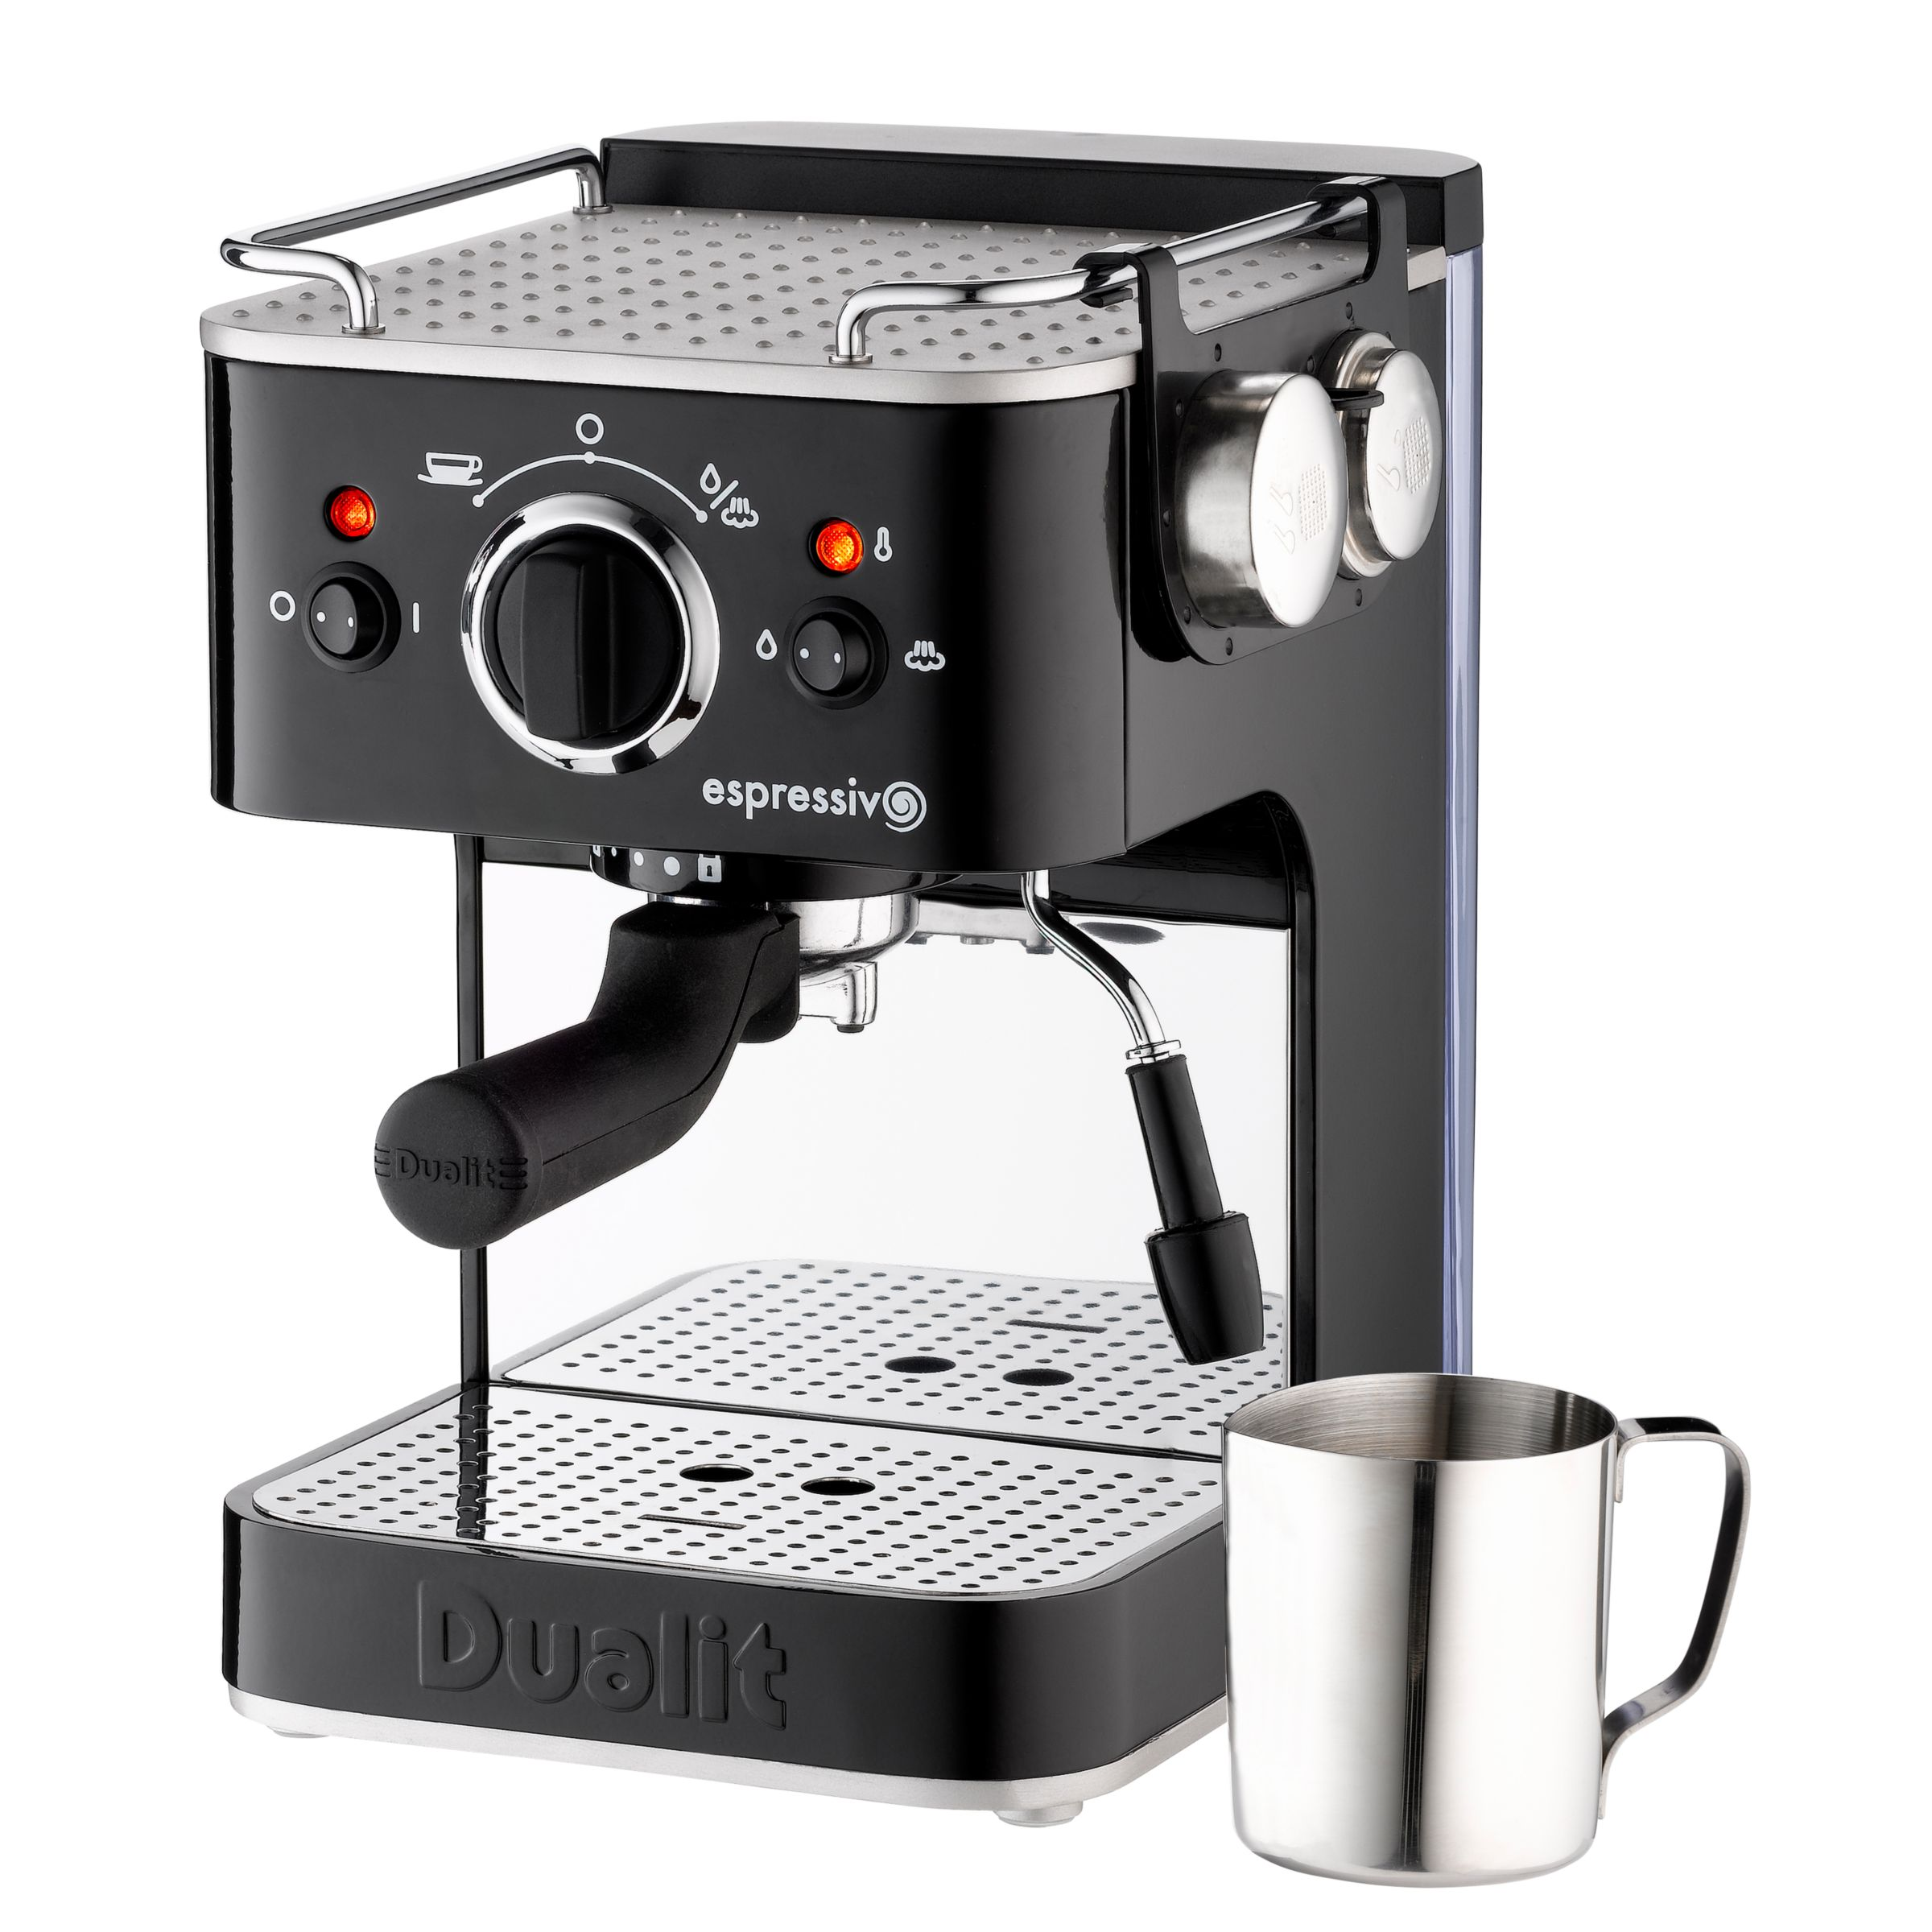 Dualit Espressivo 79005 Coffee Machine, Black with Frothing Jug at JohnLewis